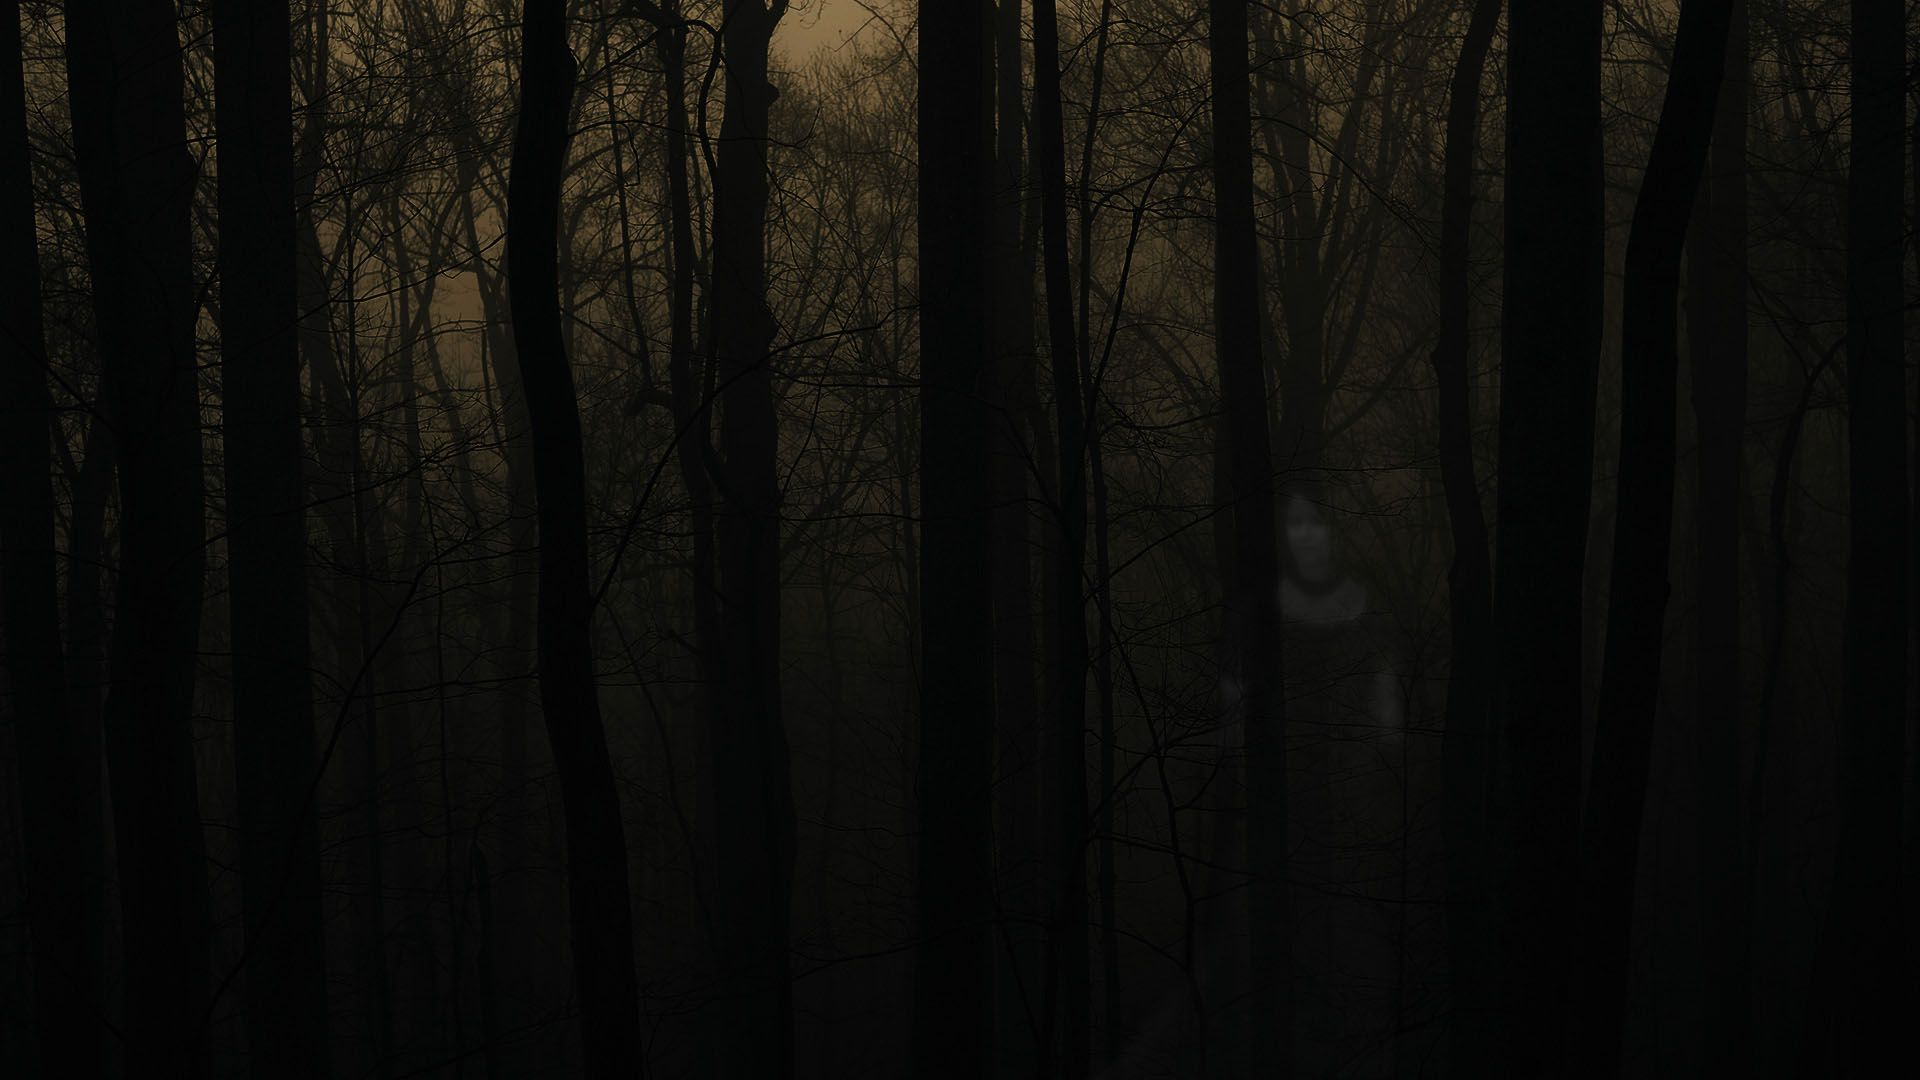 Spooky Forest Wallpapers - REuuN.com